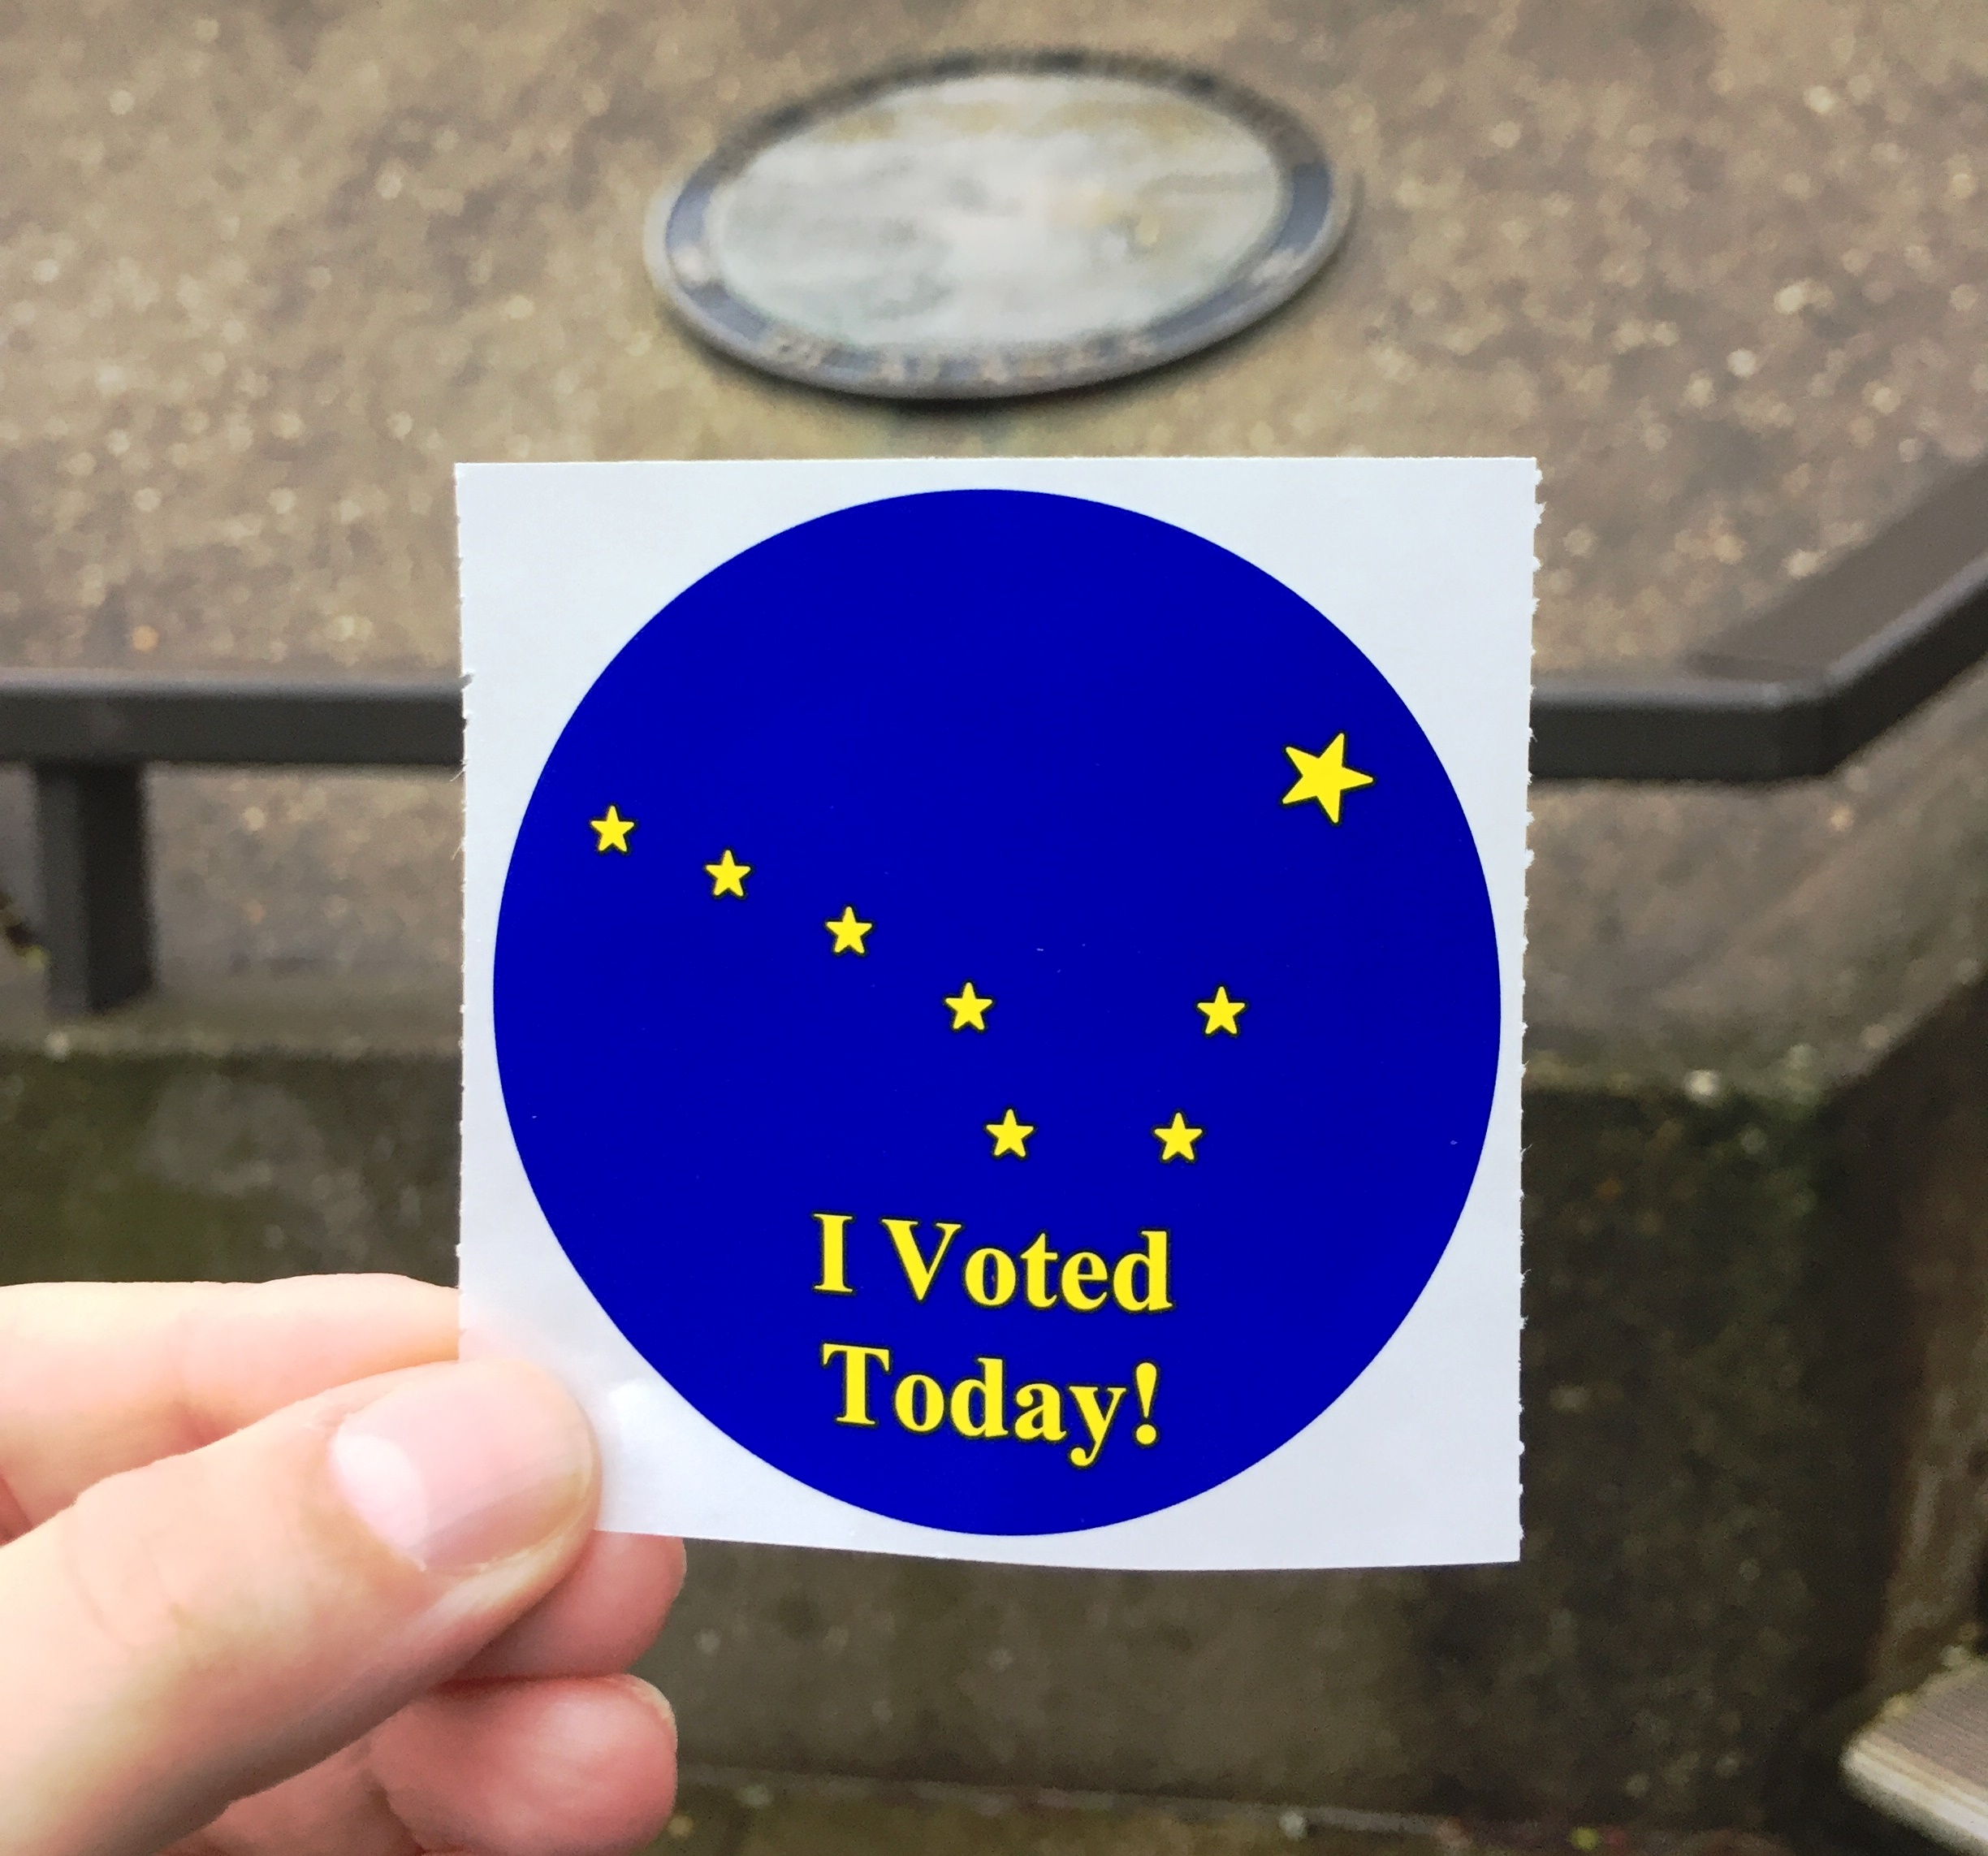 I Voted Today stickers were popular accessories on Tuesday, election day in Alaska. (Photo by Maggie Schoenfeld)